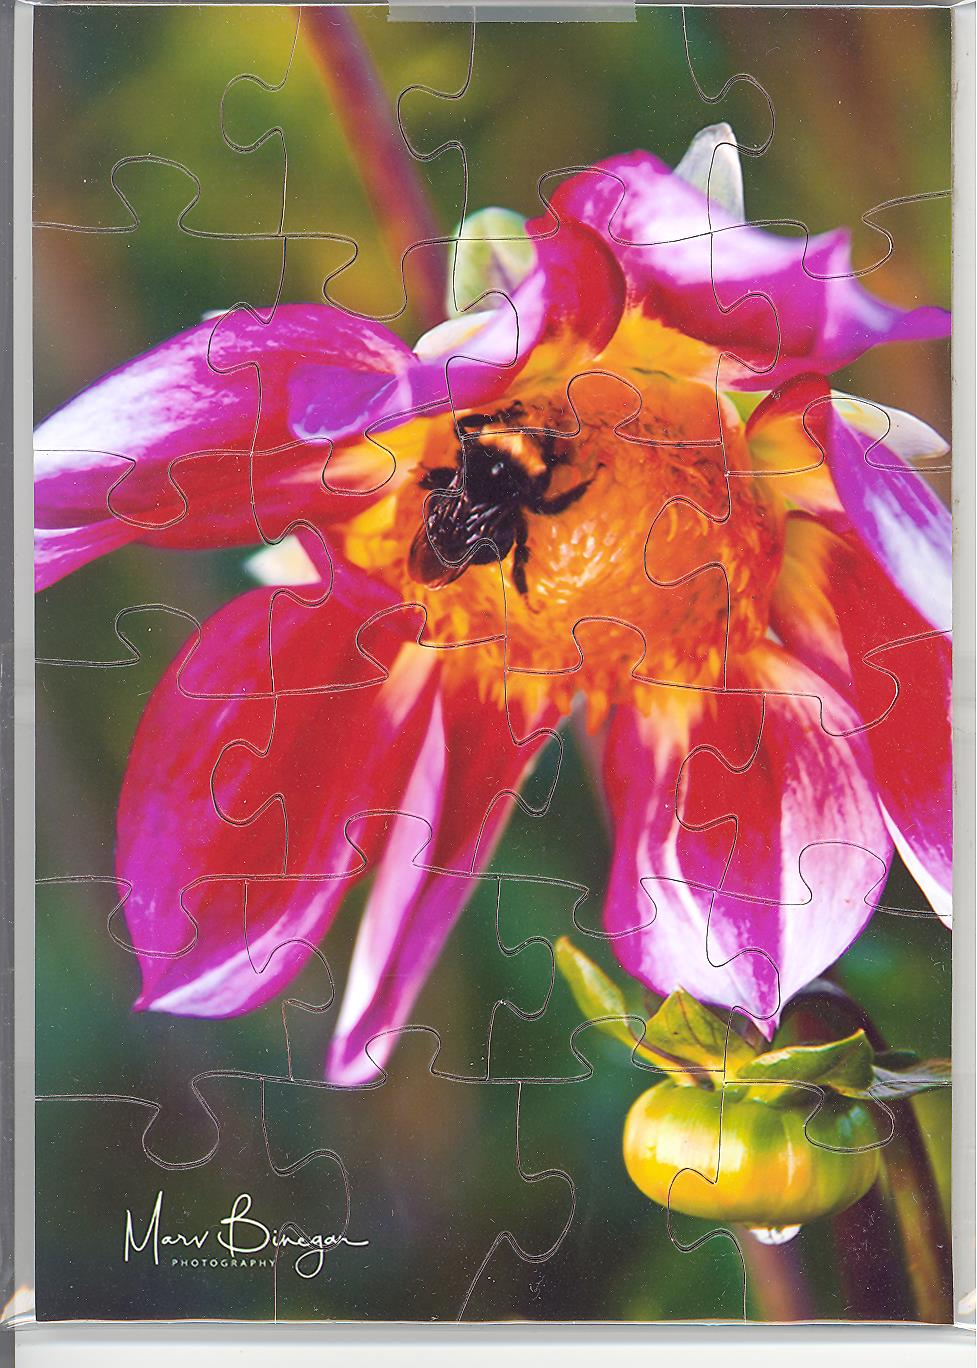 Puzzle Postcard Fort Vancouver Bumble Bee & Dahlia by Marv Binegar